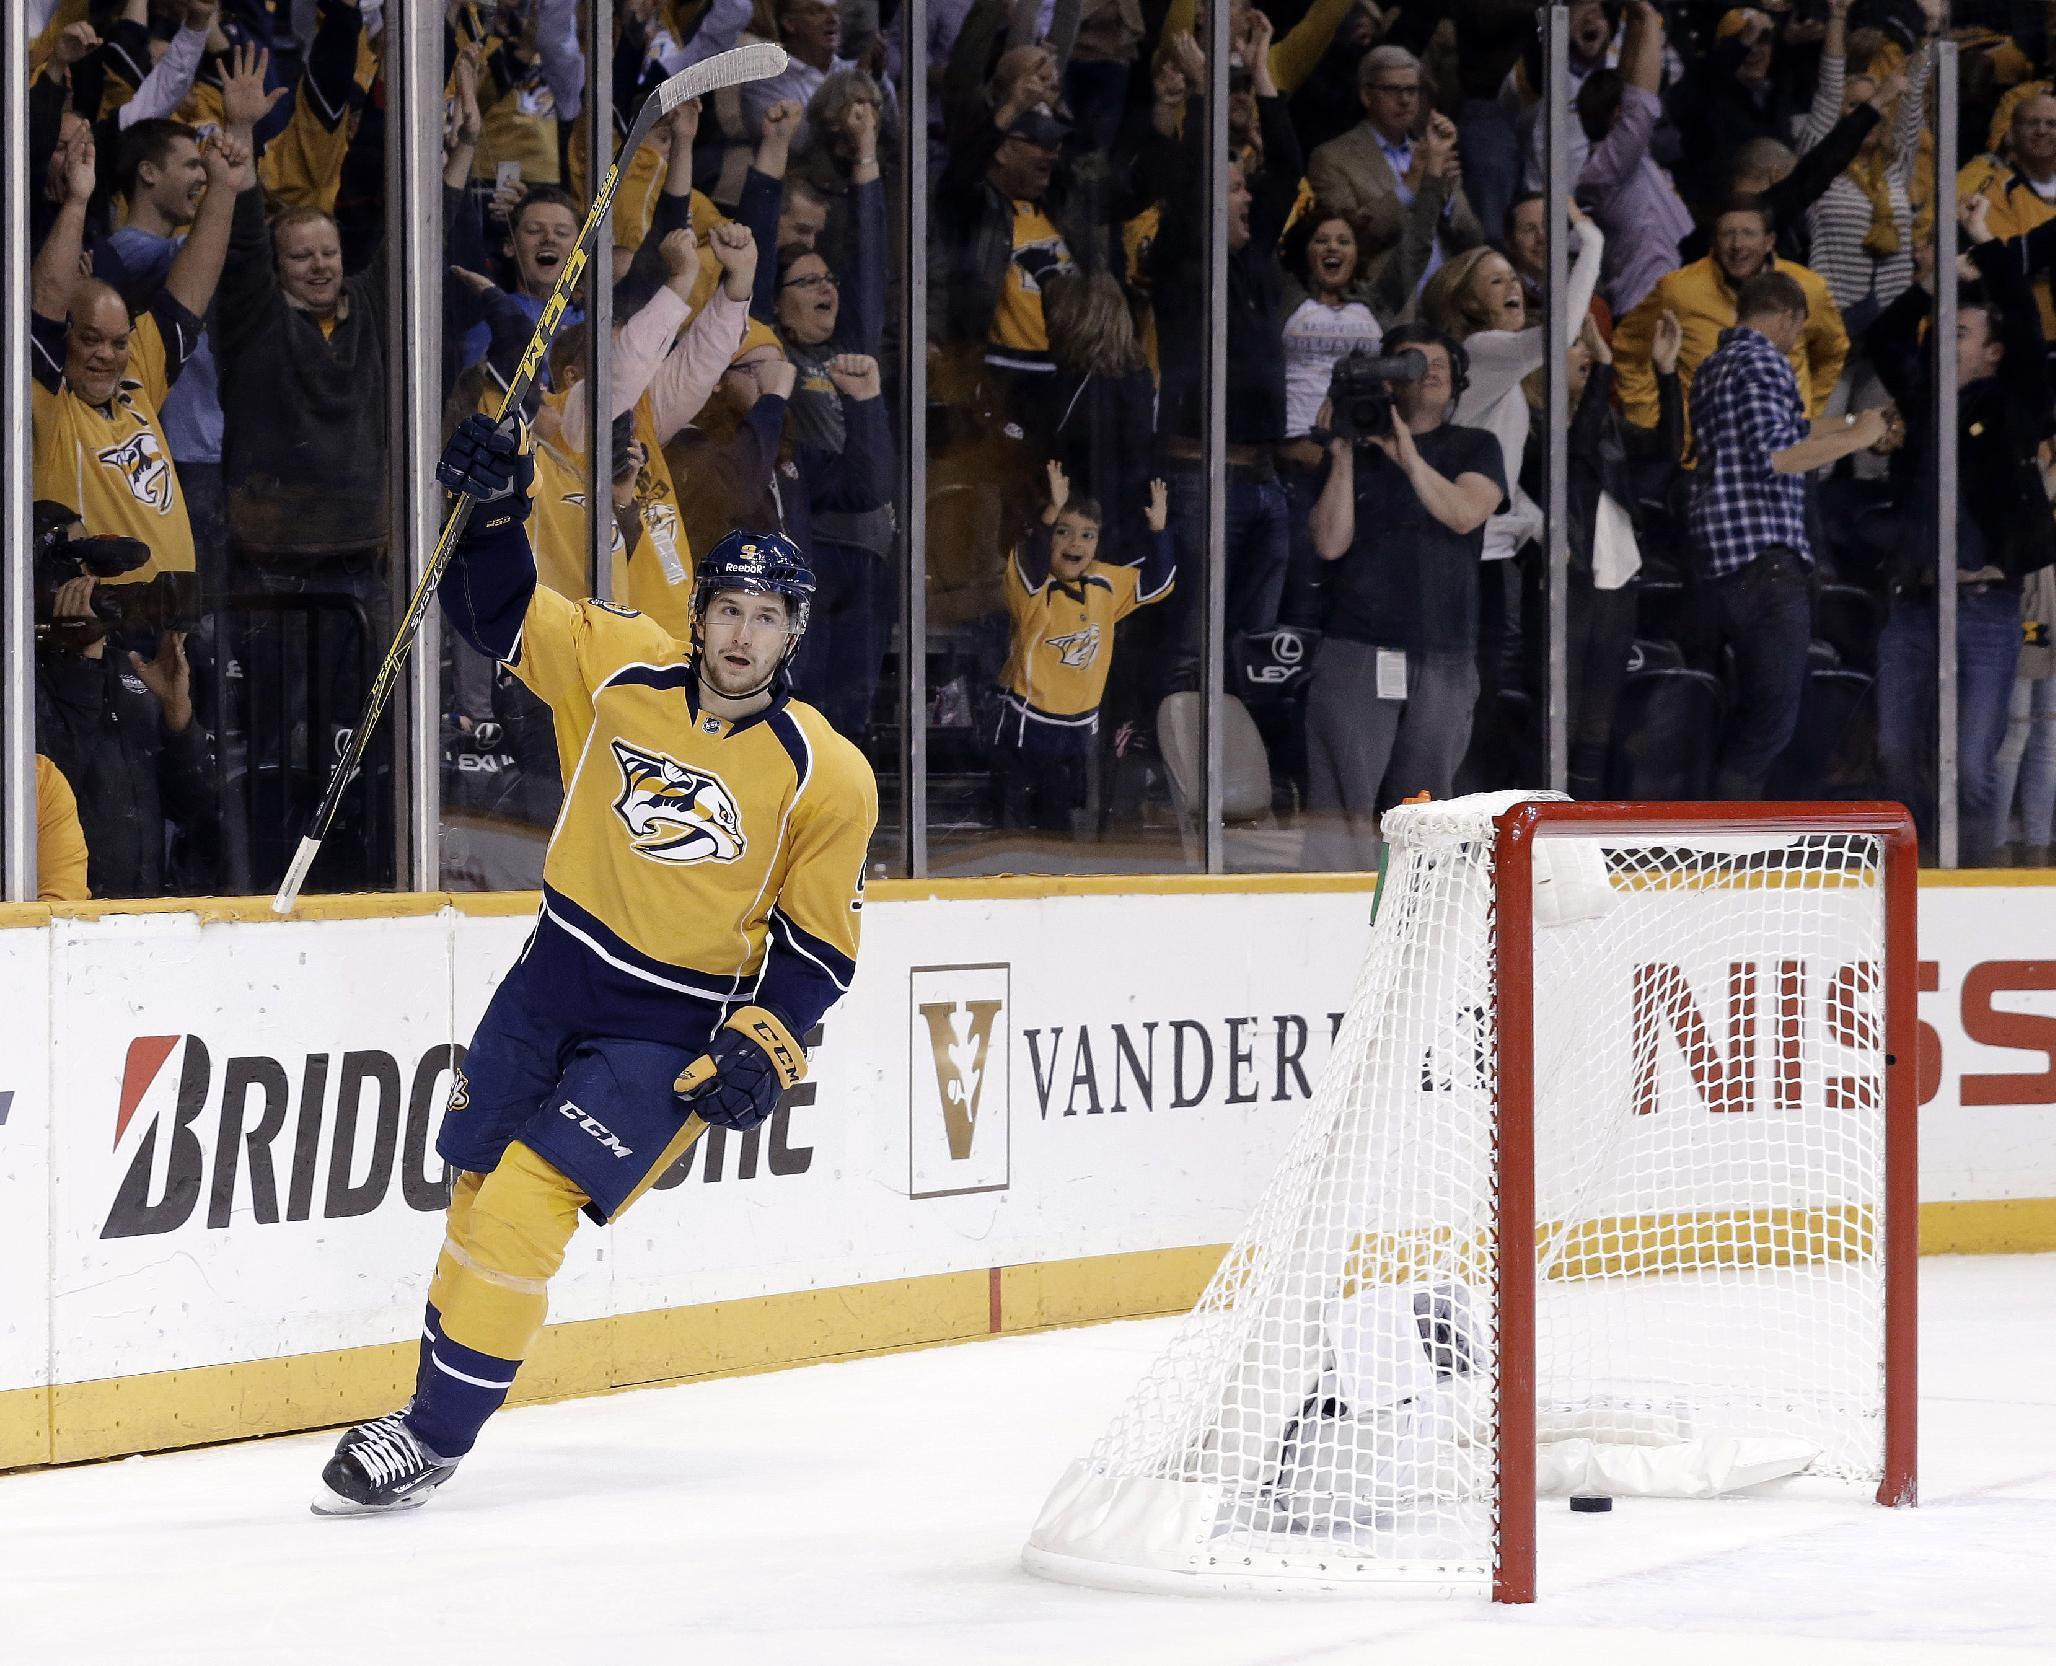 Predators force Game 6 beating Chicago 5-2 with 4 in 3rd